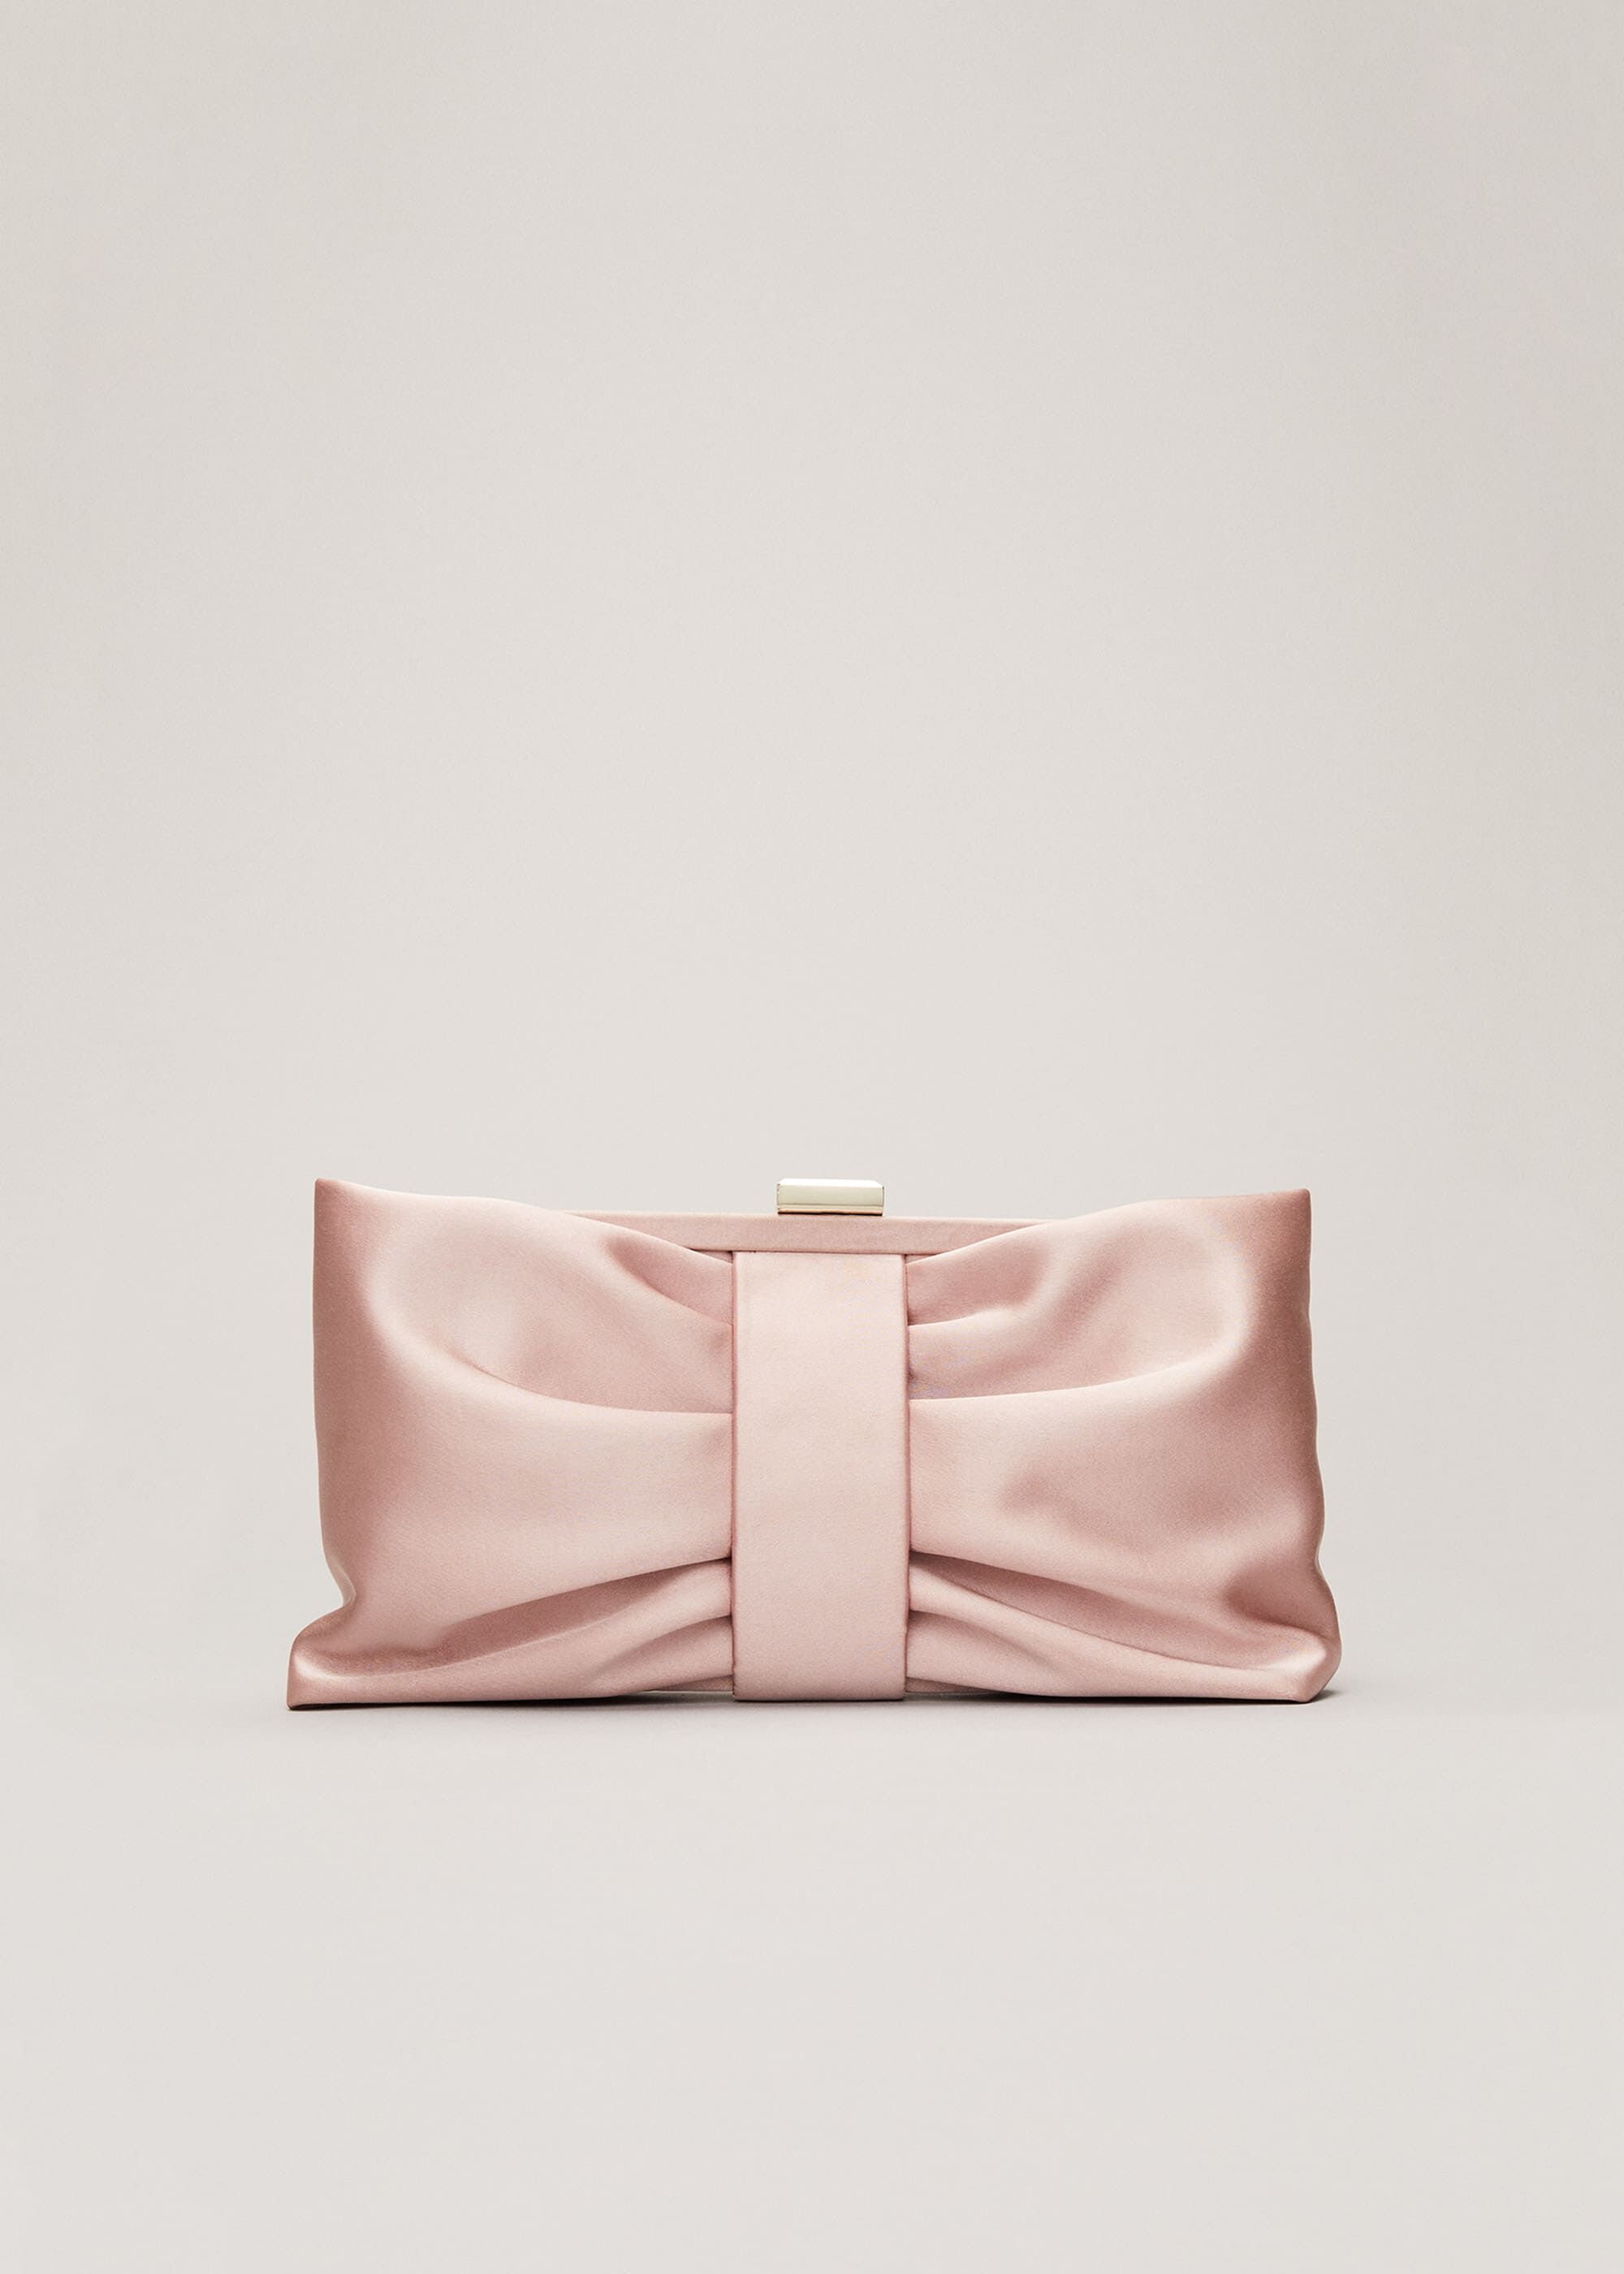 Phase Eight Meaghan Satin Bow Clutch Bag, Pink, Bag